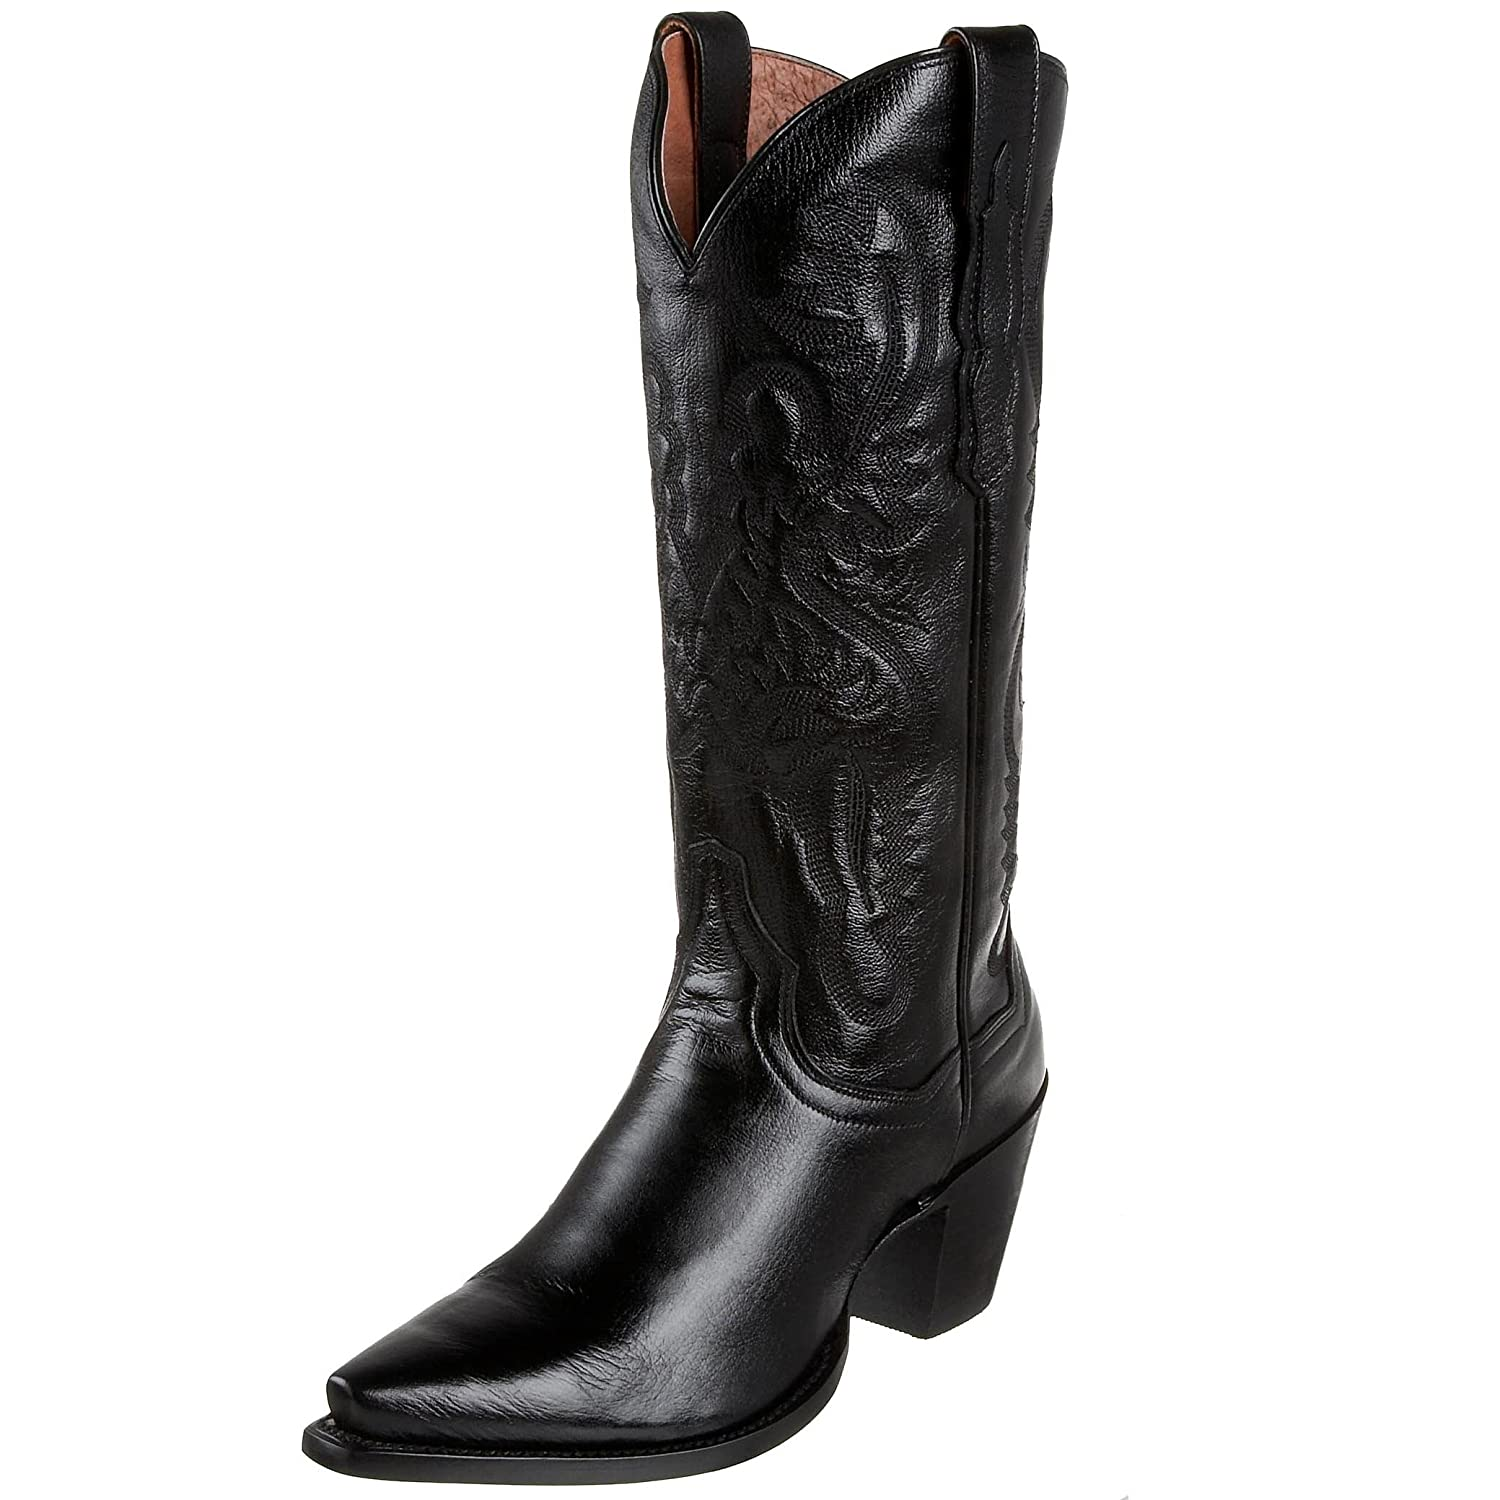 Dan Post Women's Maria Western Boot B003VXQ69C 5.5 M US|Black